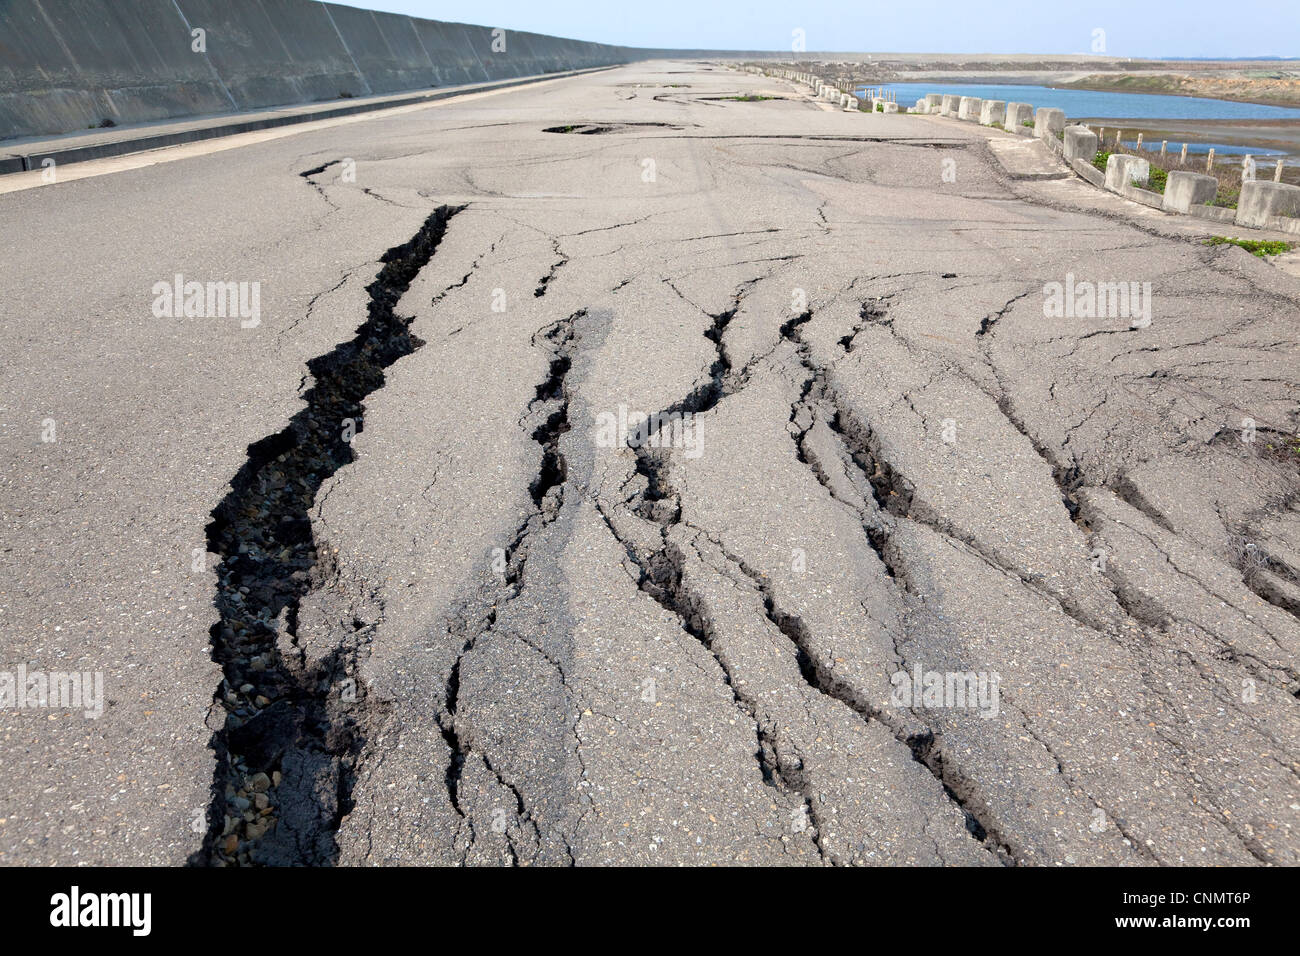 collapse and cracked road - Stock Image